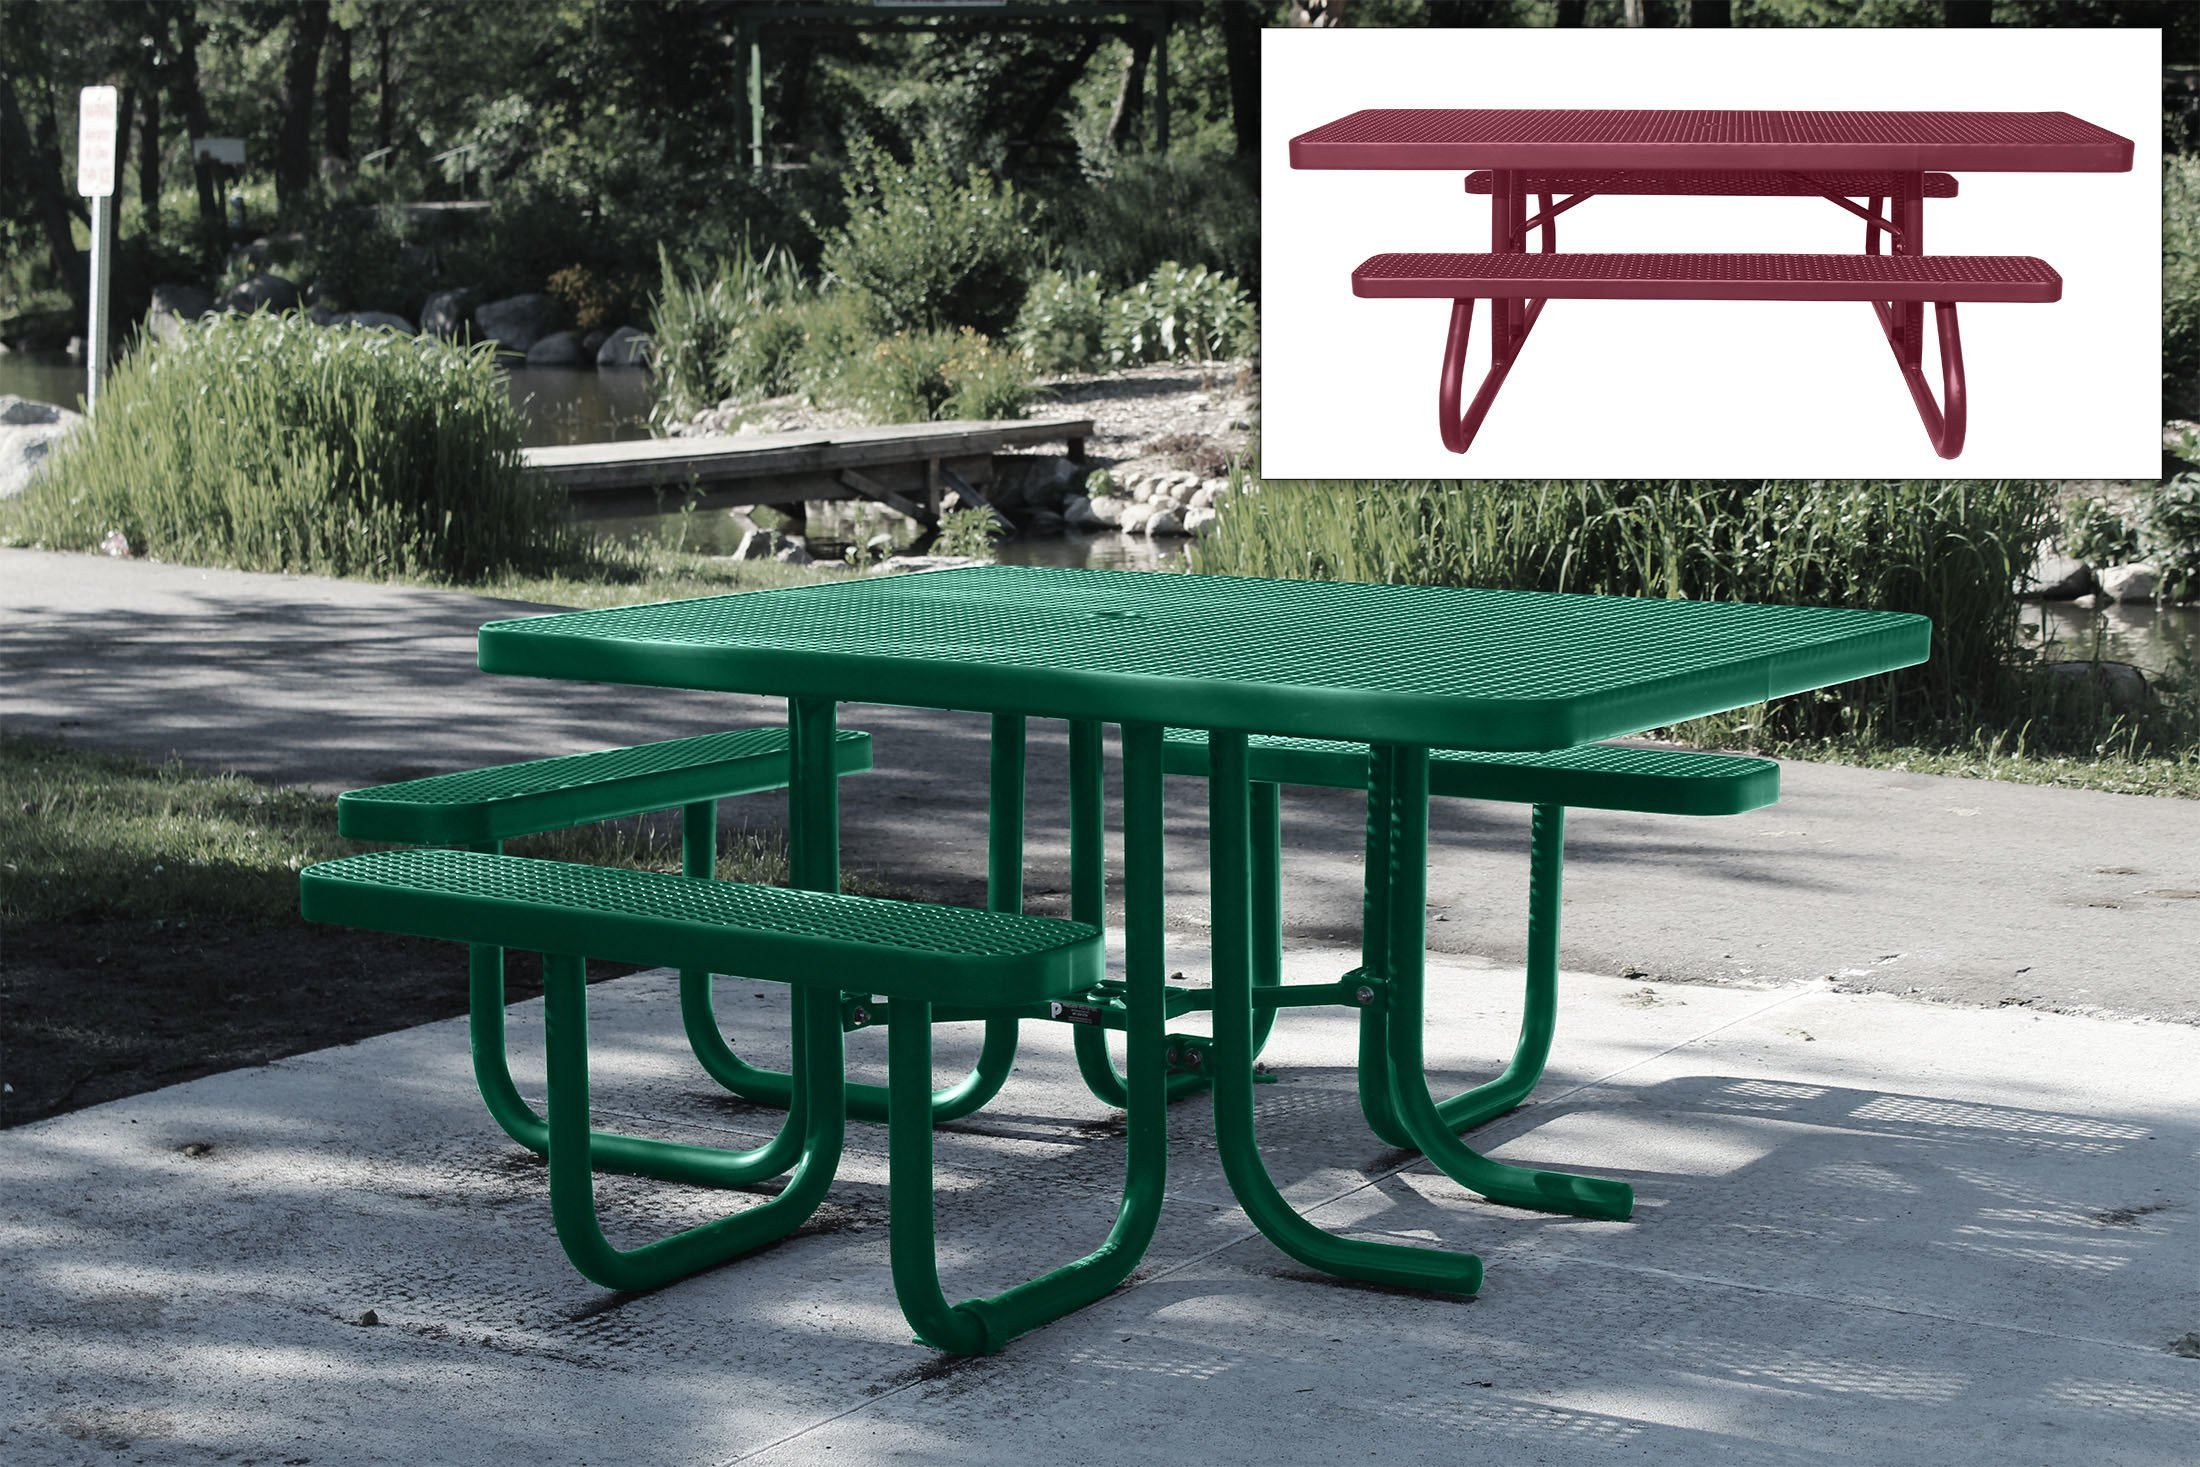 Premier Polysteel Offers Plastic Coated Steel Picnic Tables